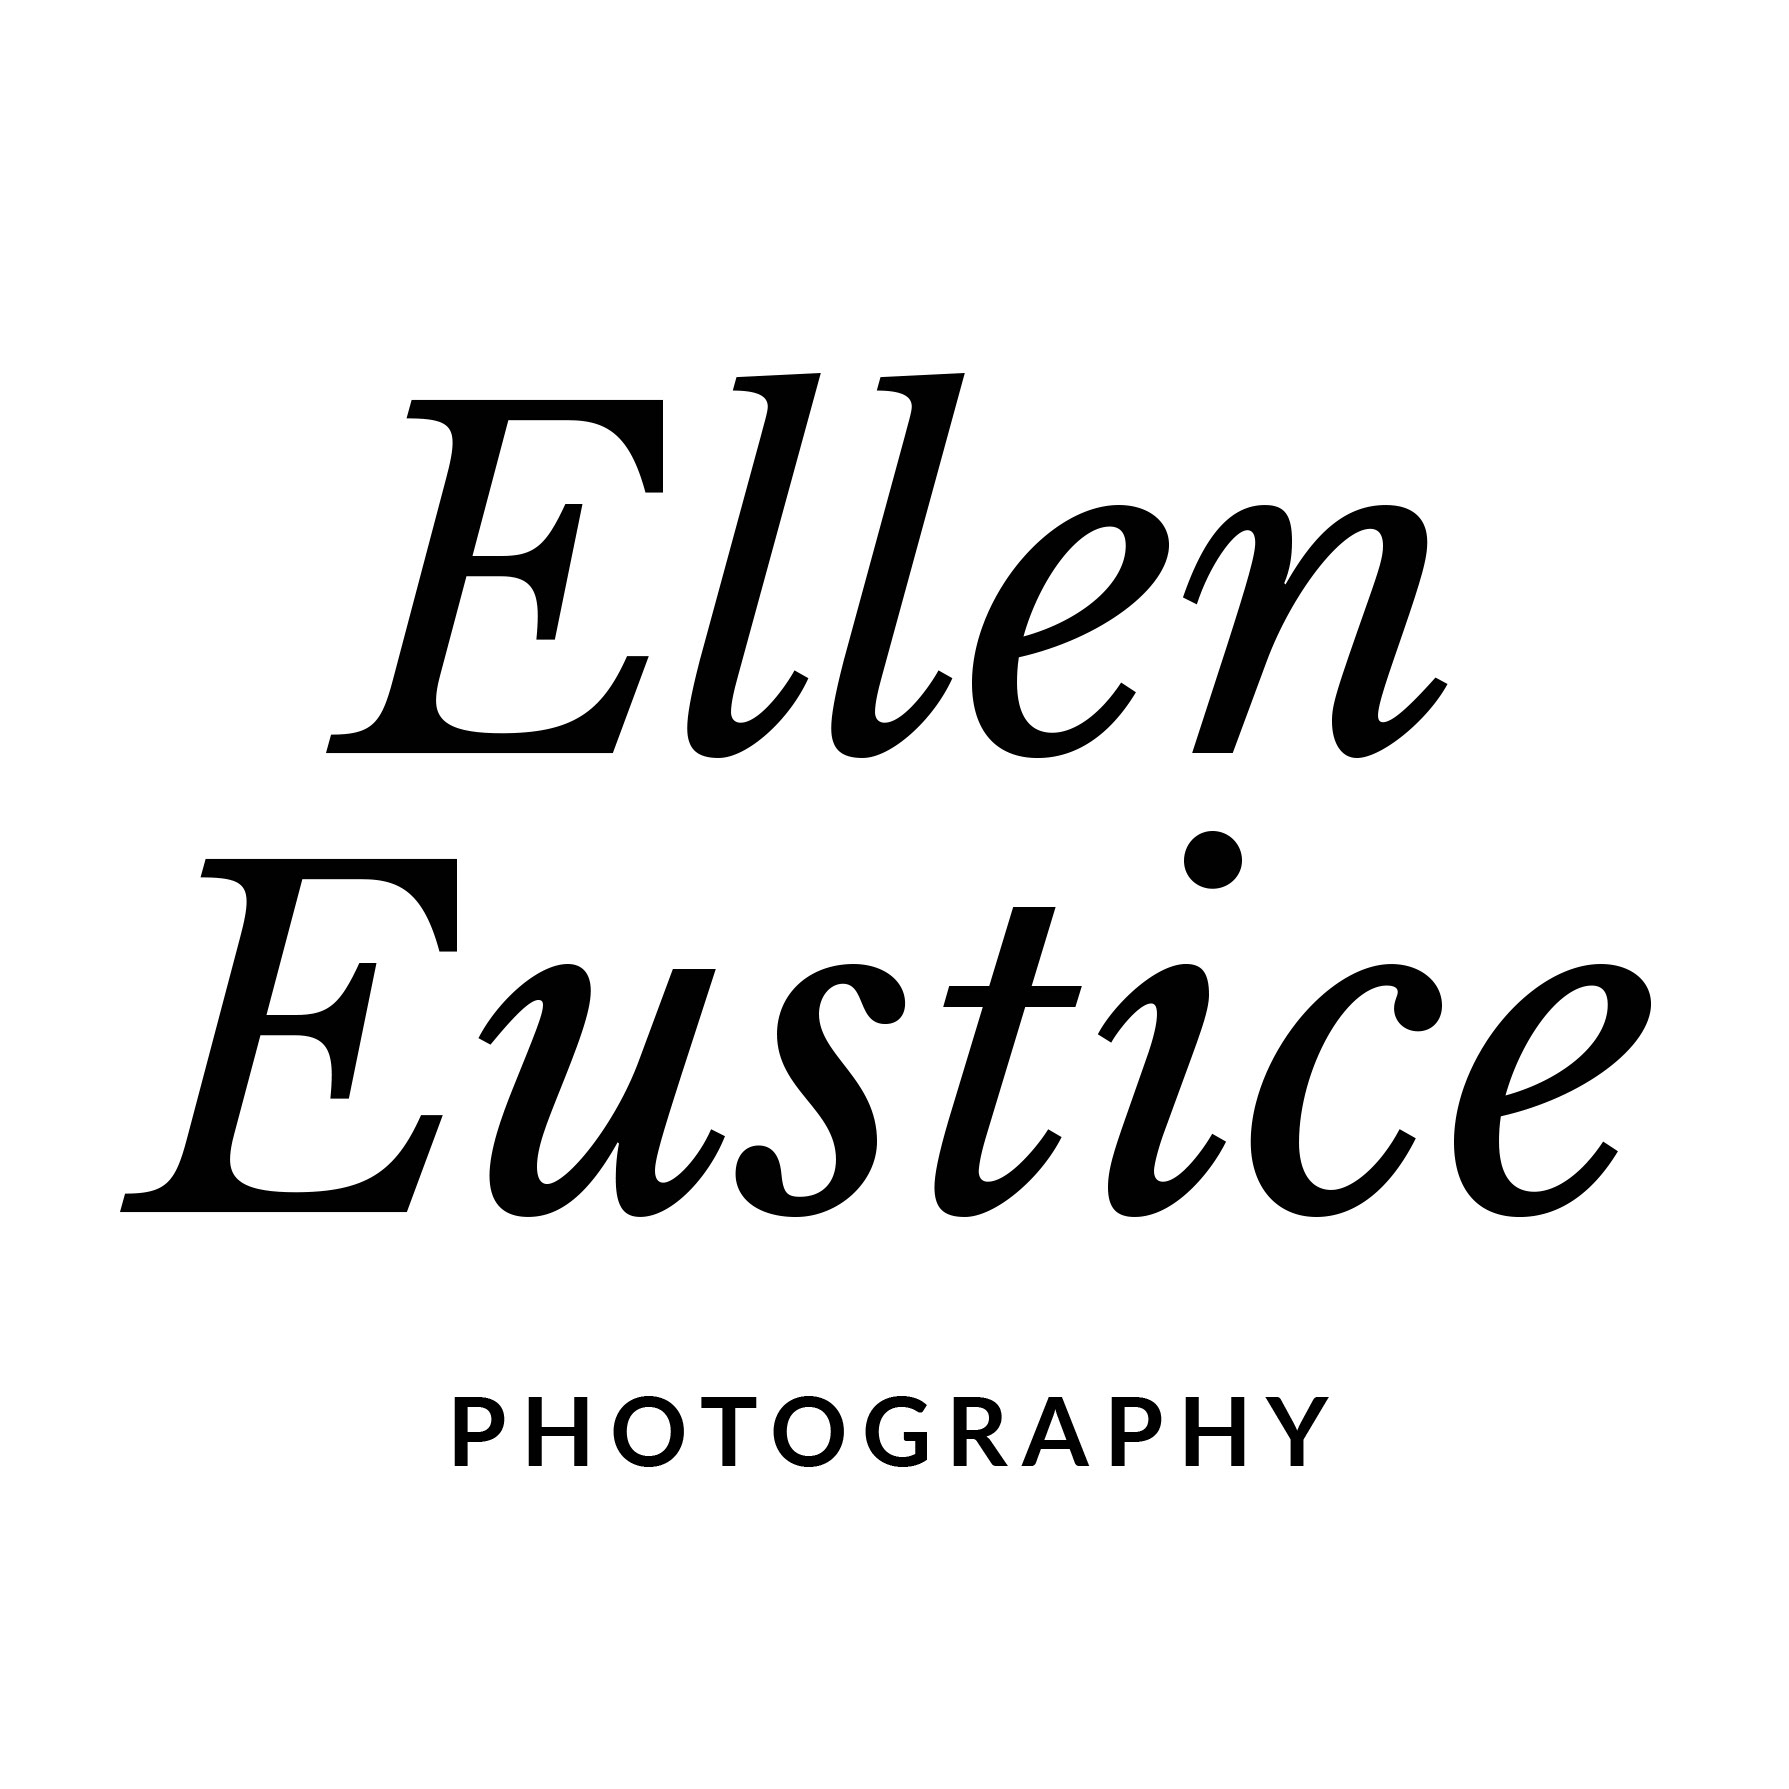 Ellen Eustice Photography